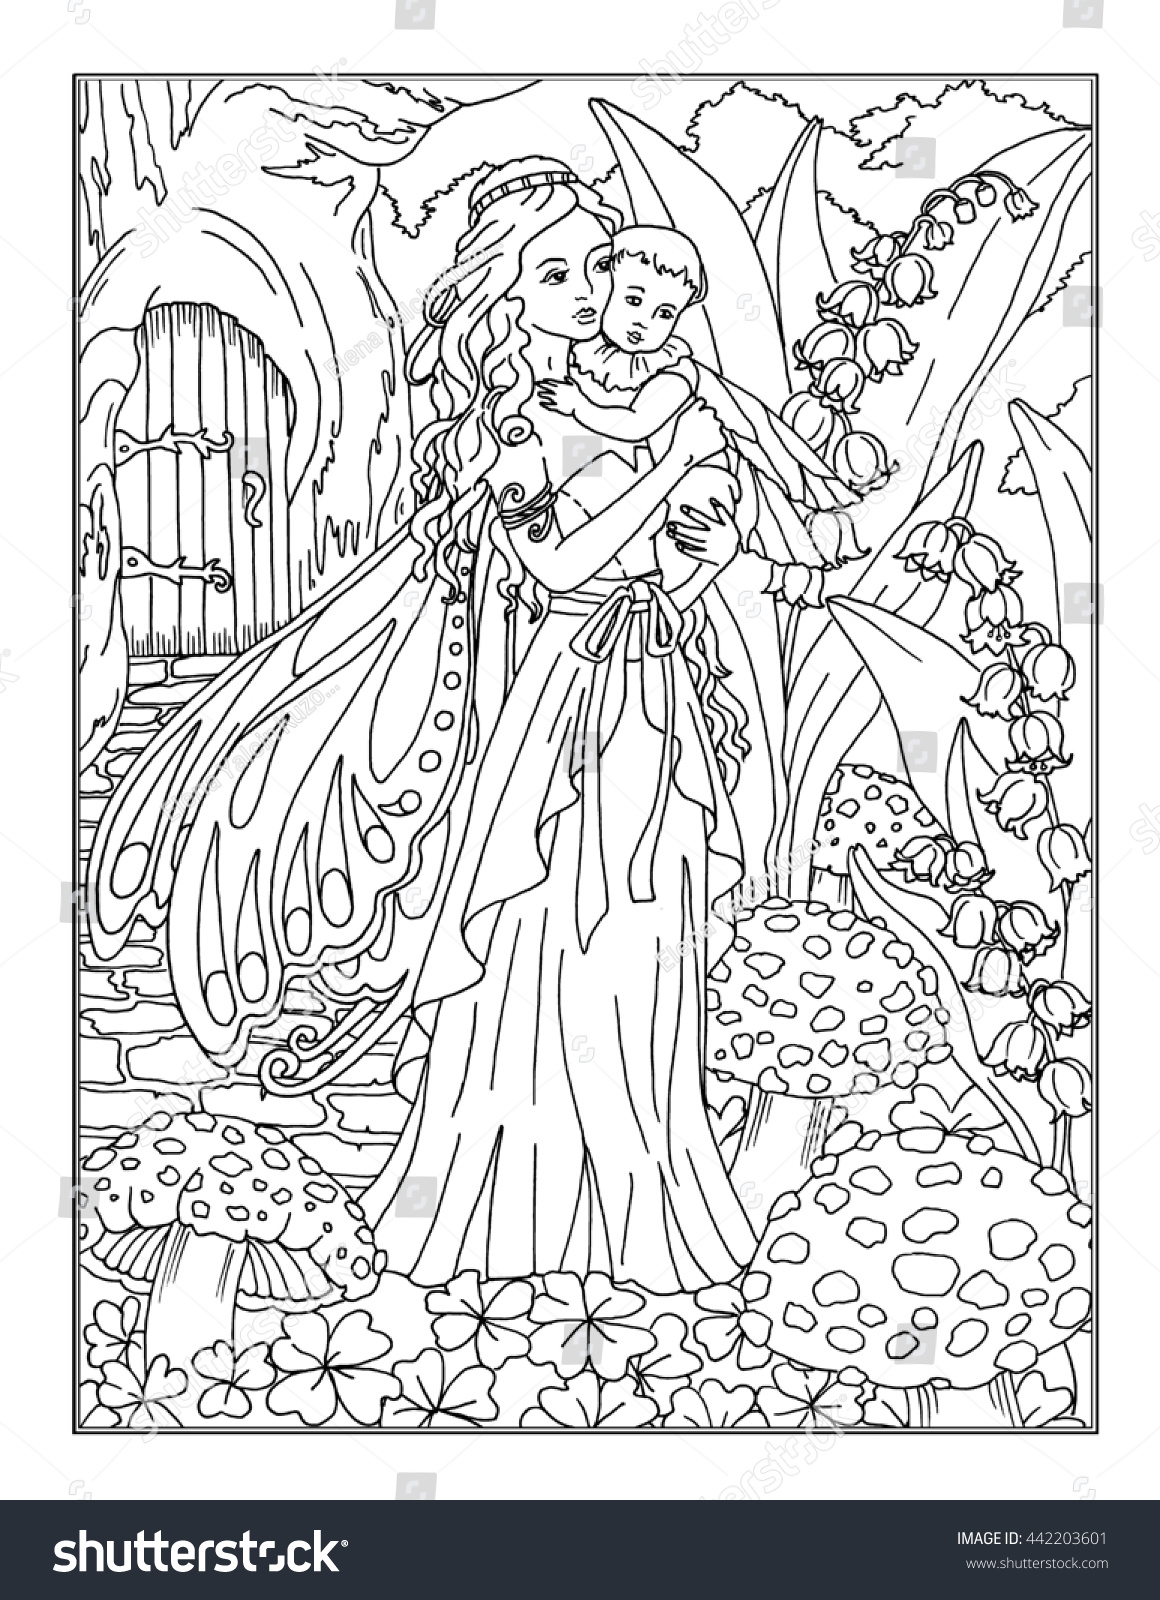 Coloring page The enchanted fairy | EZ Canvas